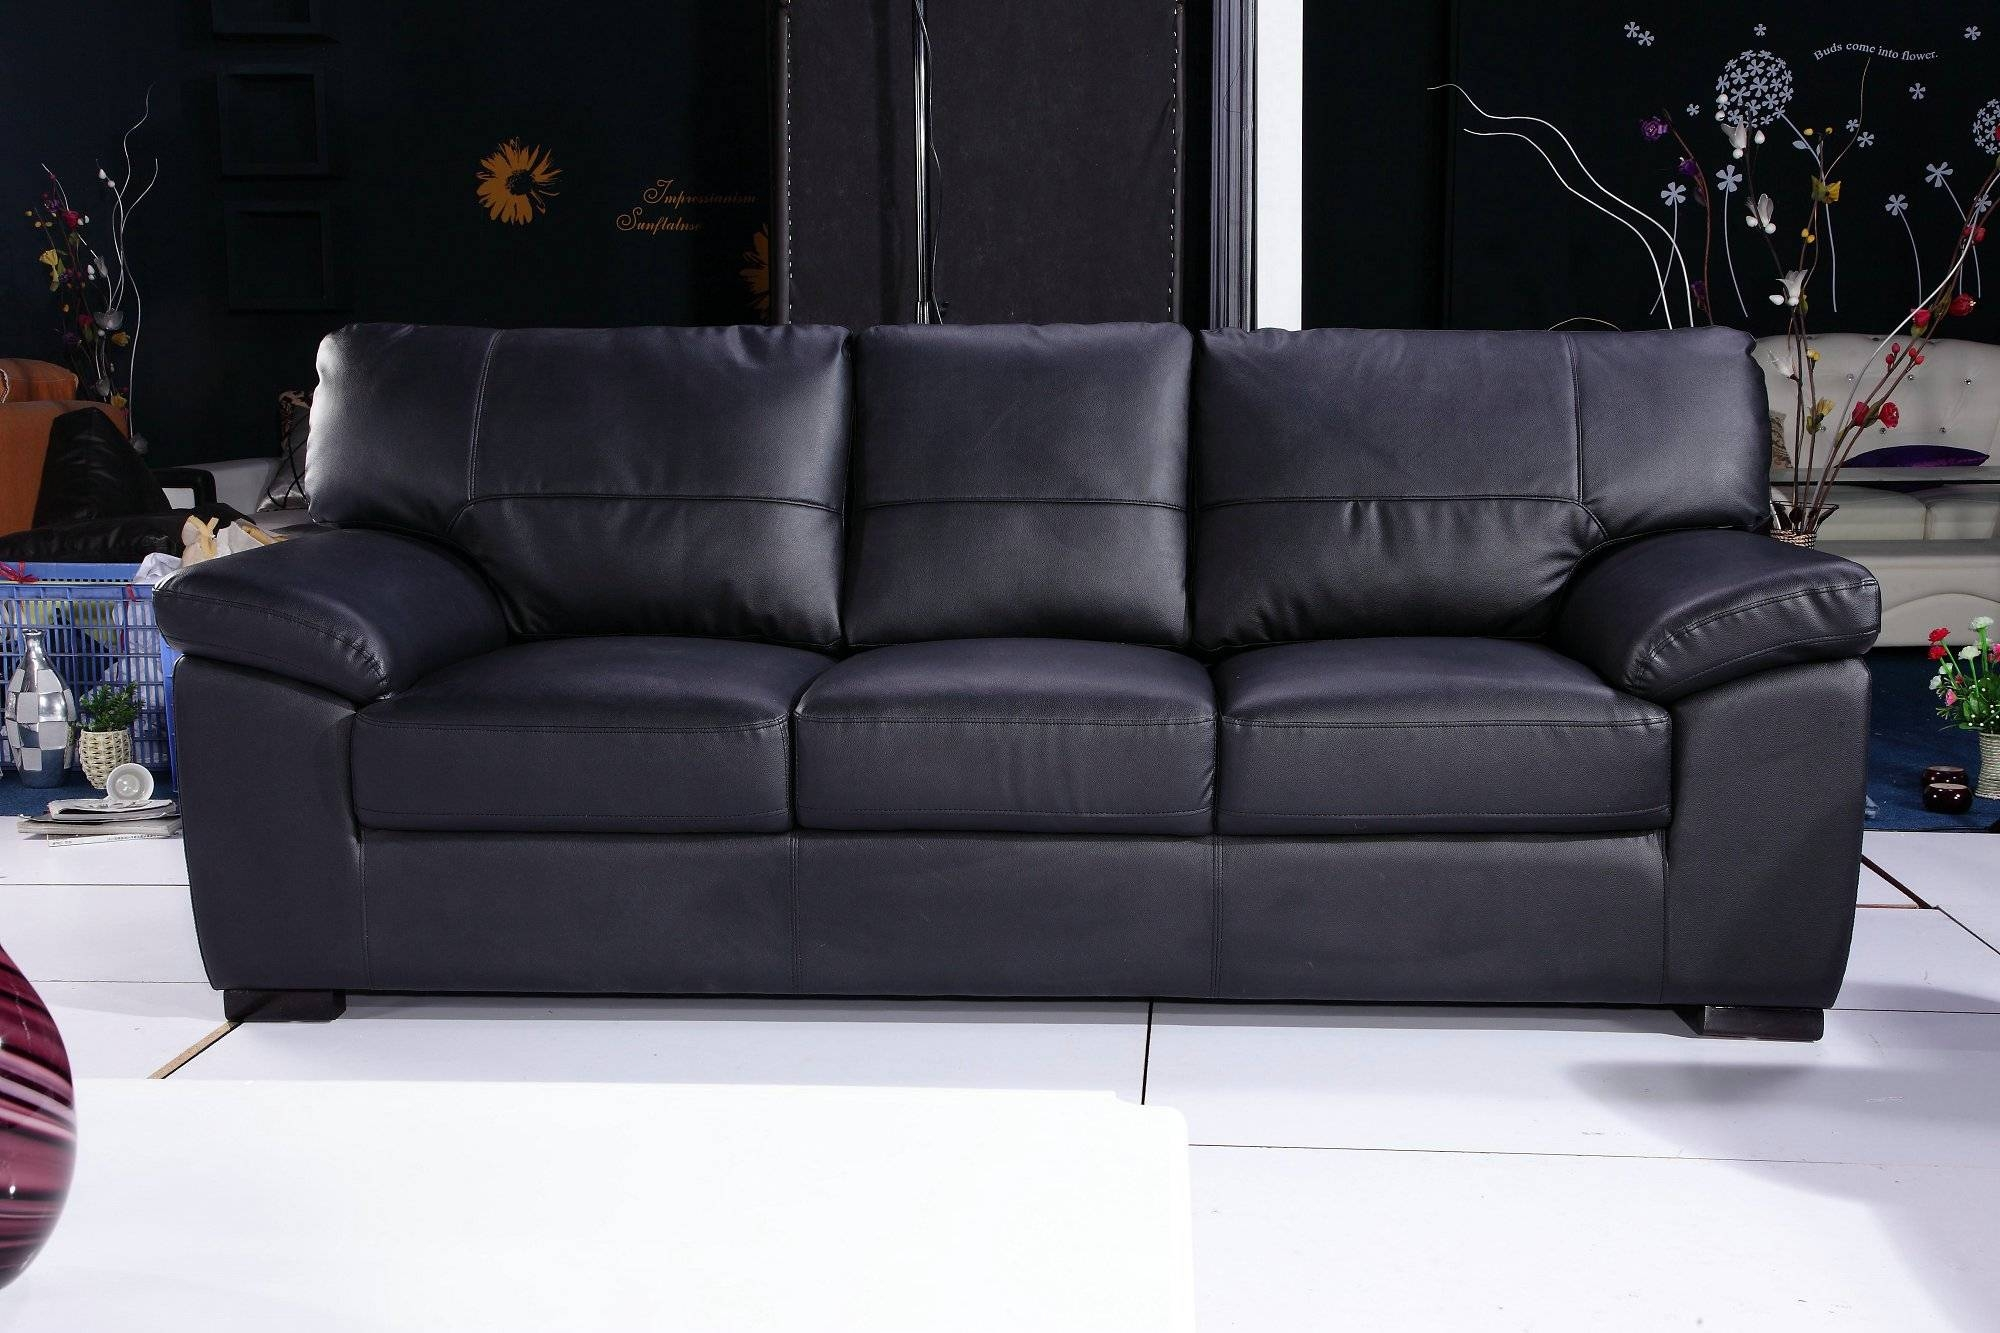 Sofa : 3 Seater Leather Sofa Recliner Home Style Tips Unique At 3 with 3 Seater Sofas for Sale (Image 18 of 30)